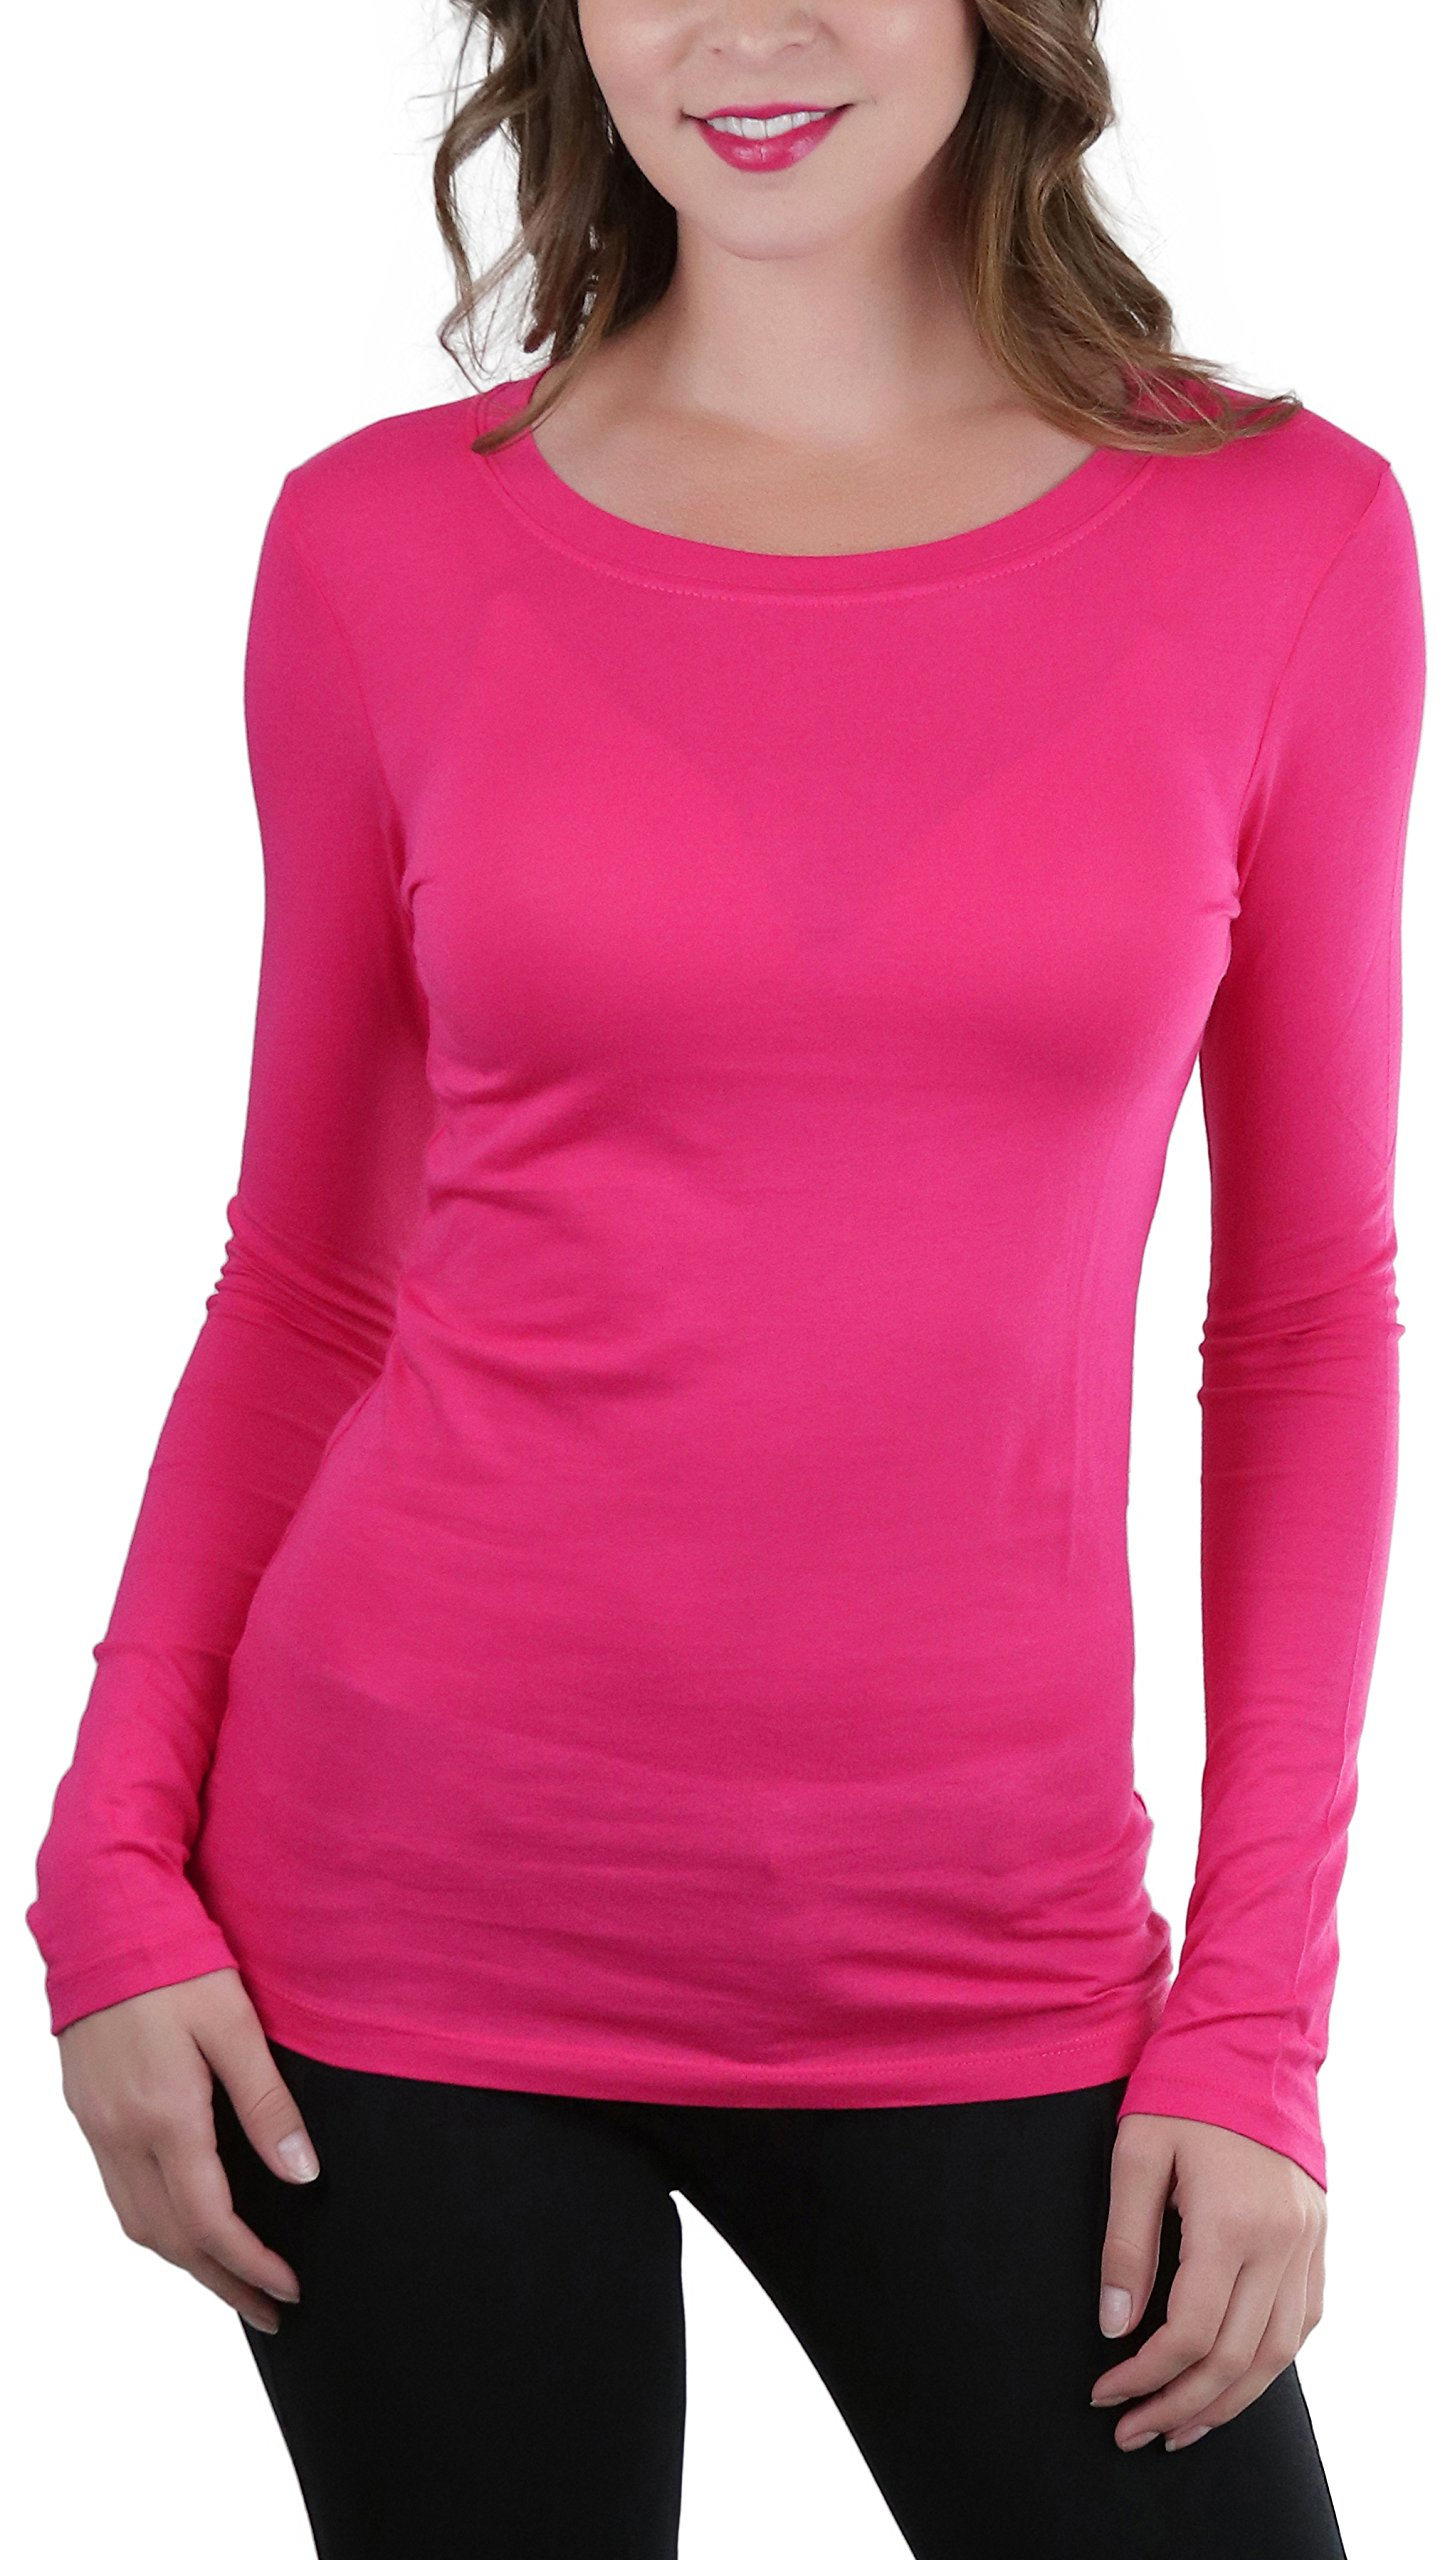 ToBeInStyle Women's Basic L.S. Neck Binding Crew Neck Tee - H Pink - Large